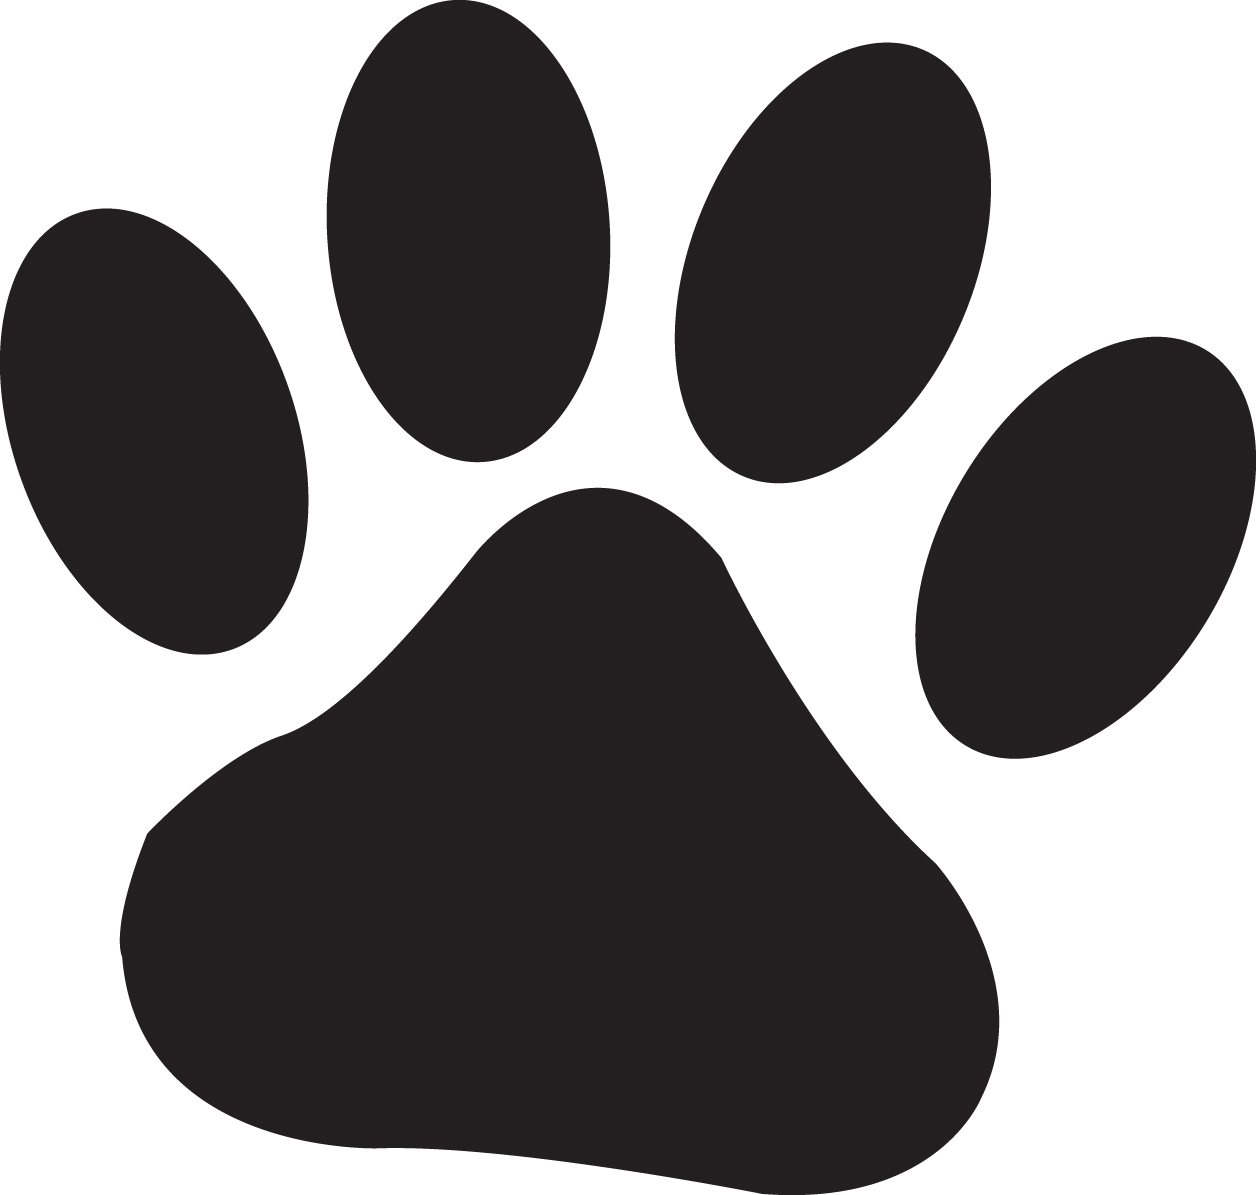 Clipart dog and cat paw prints.